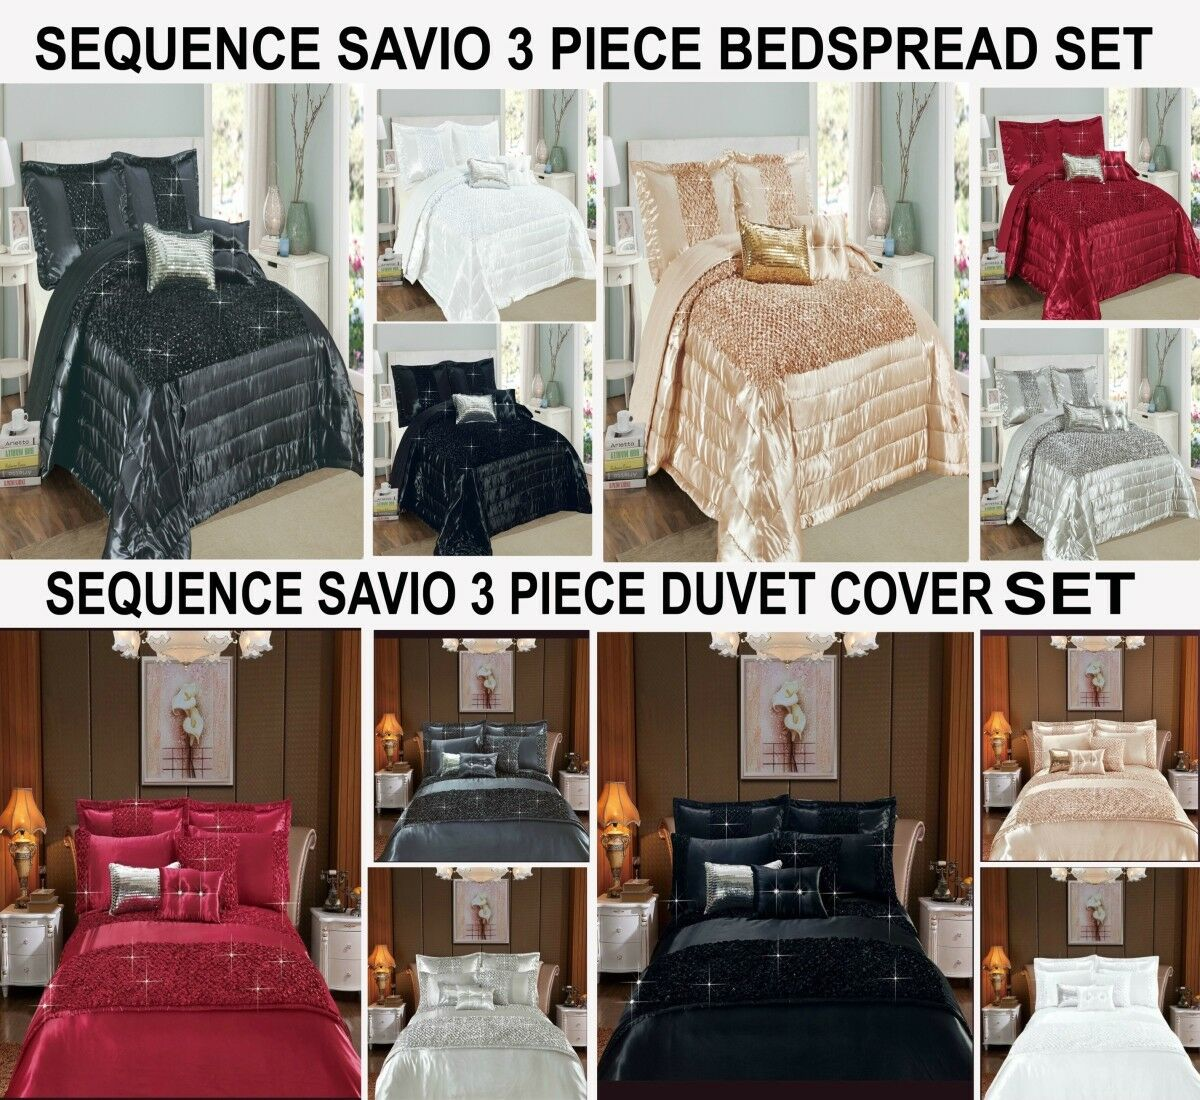 Duvet Cover Set & Bedspread Bedding Cover 3 Pieces Quilted Set With 2 Pillowcase